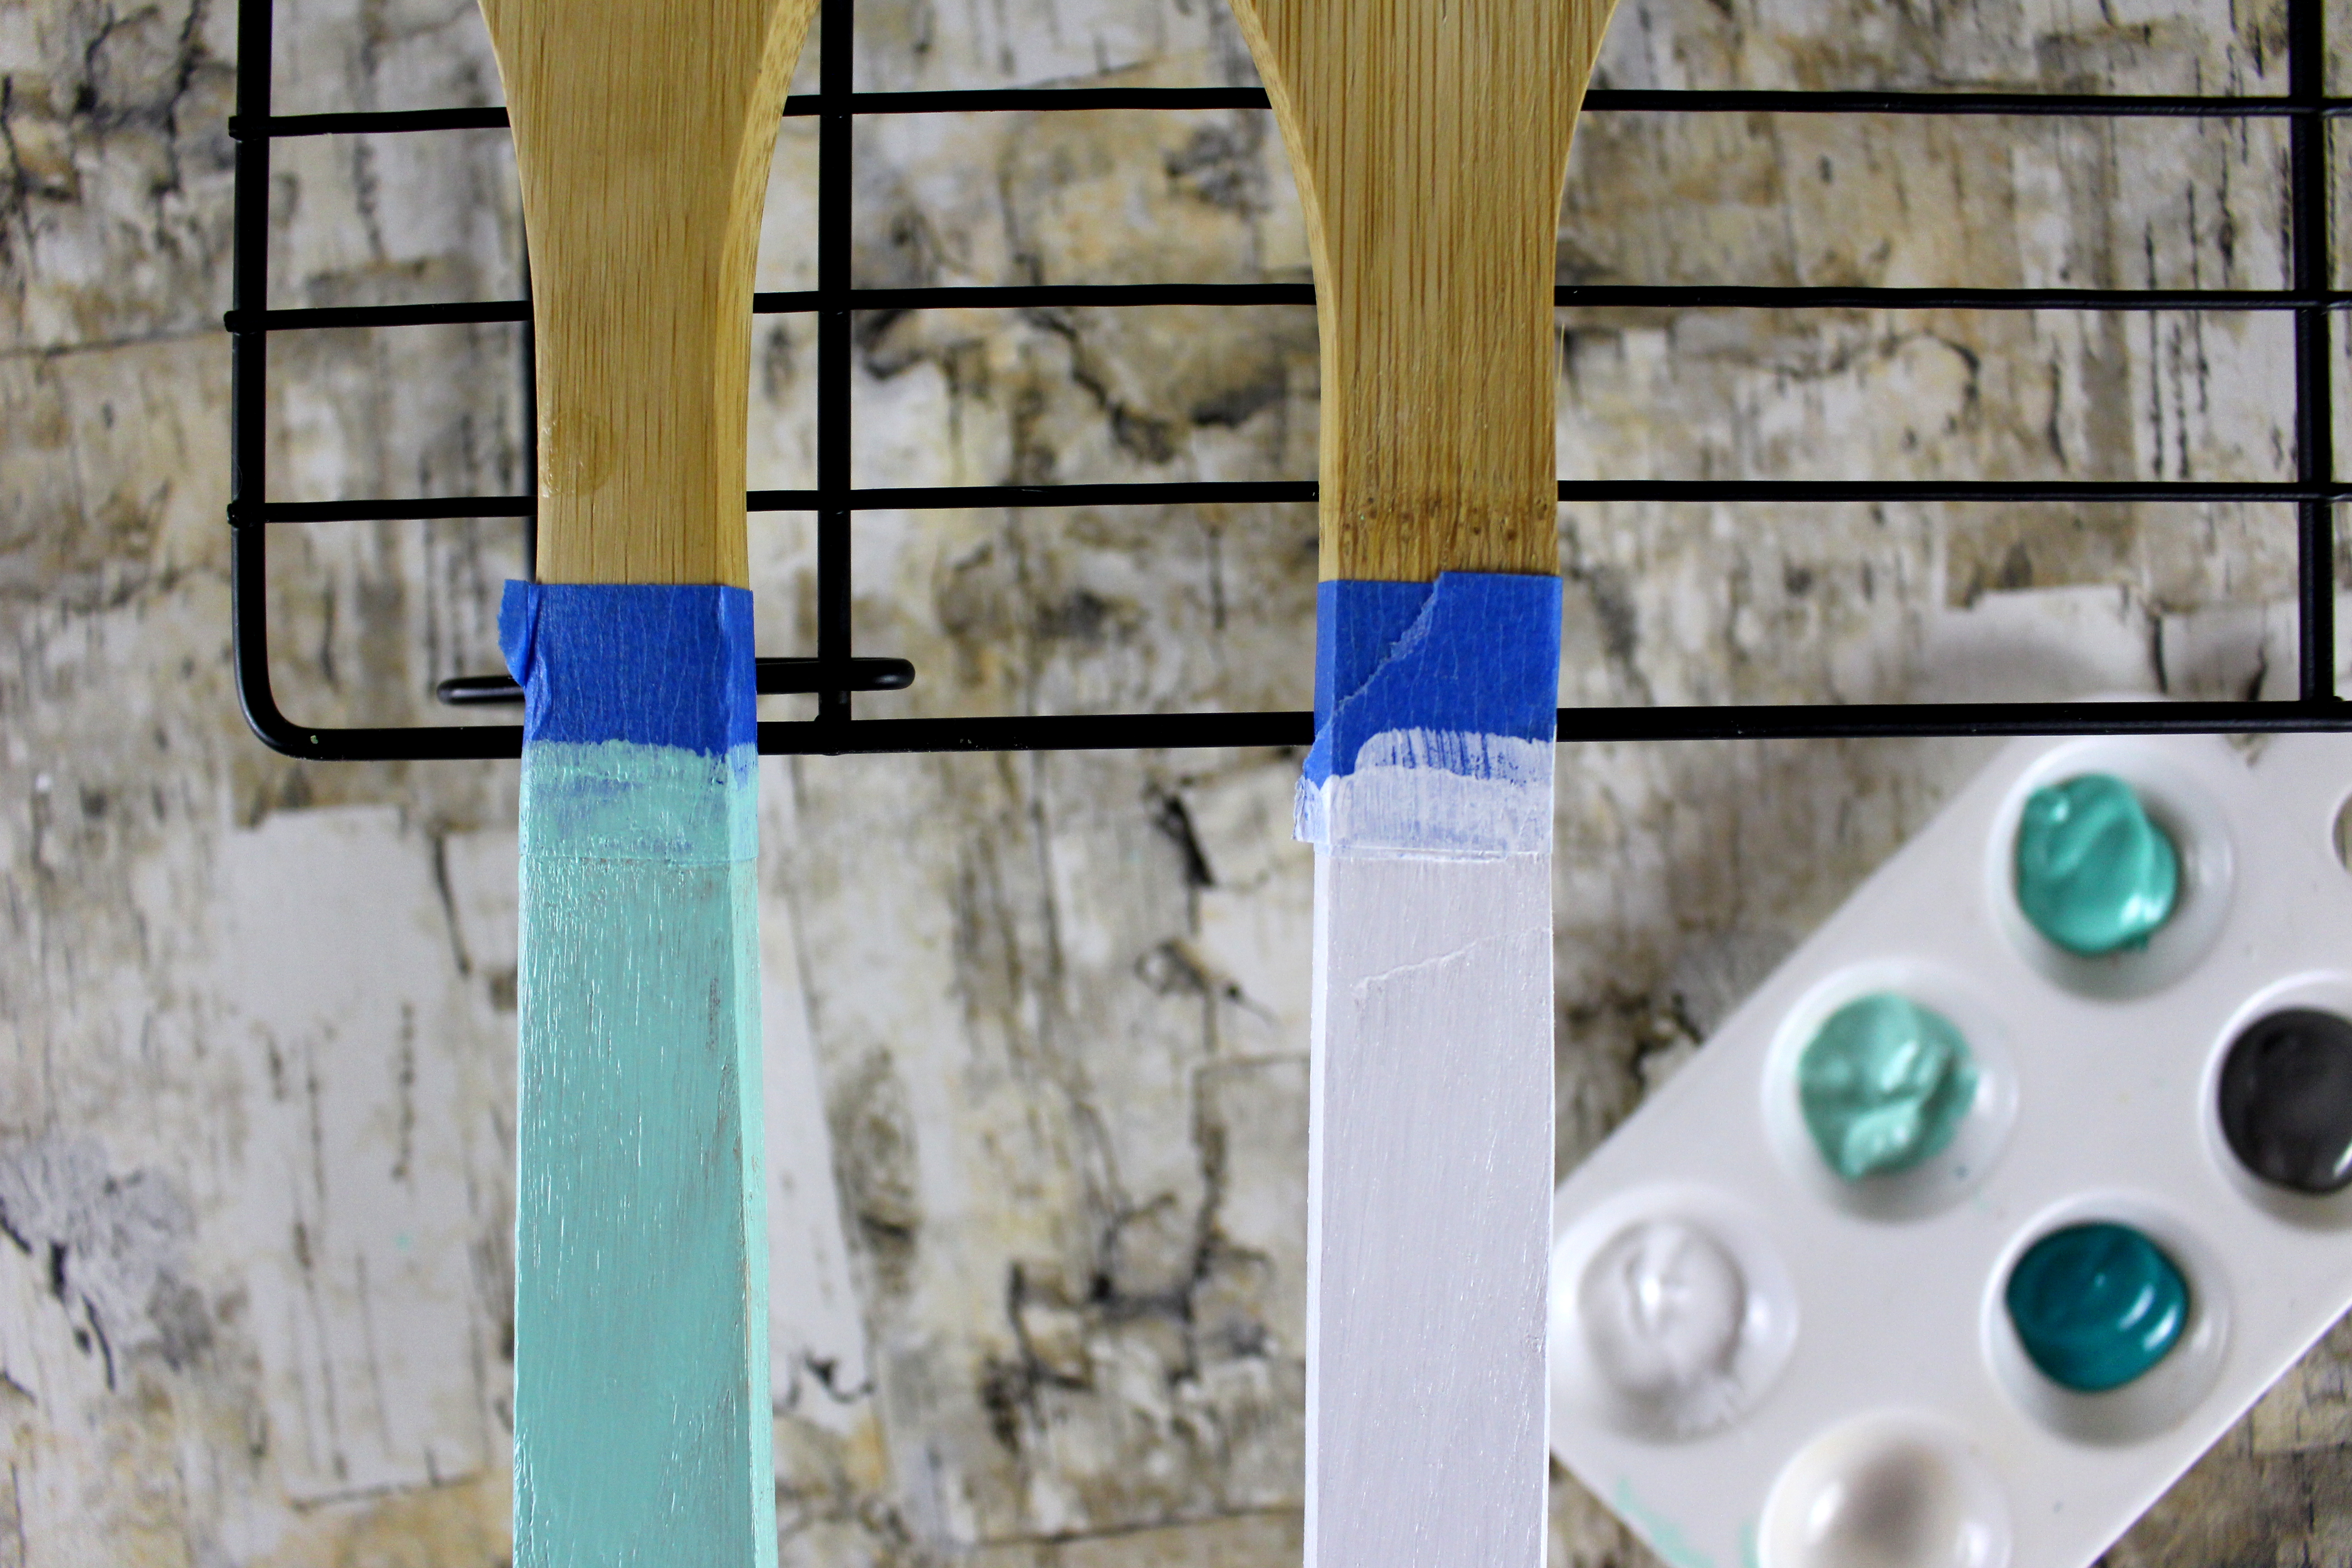 DIY: Painting Kitchen Utensils